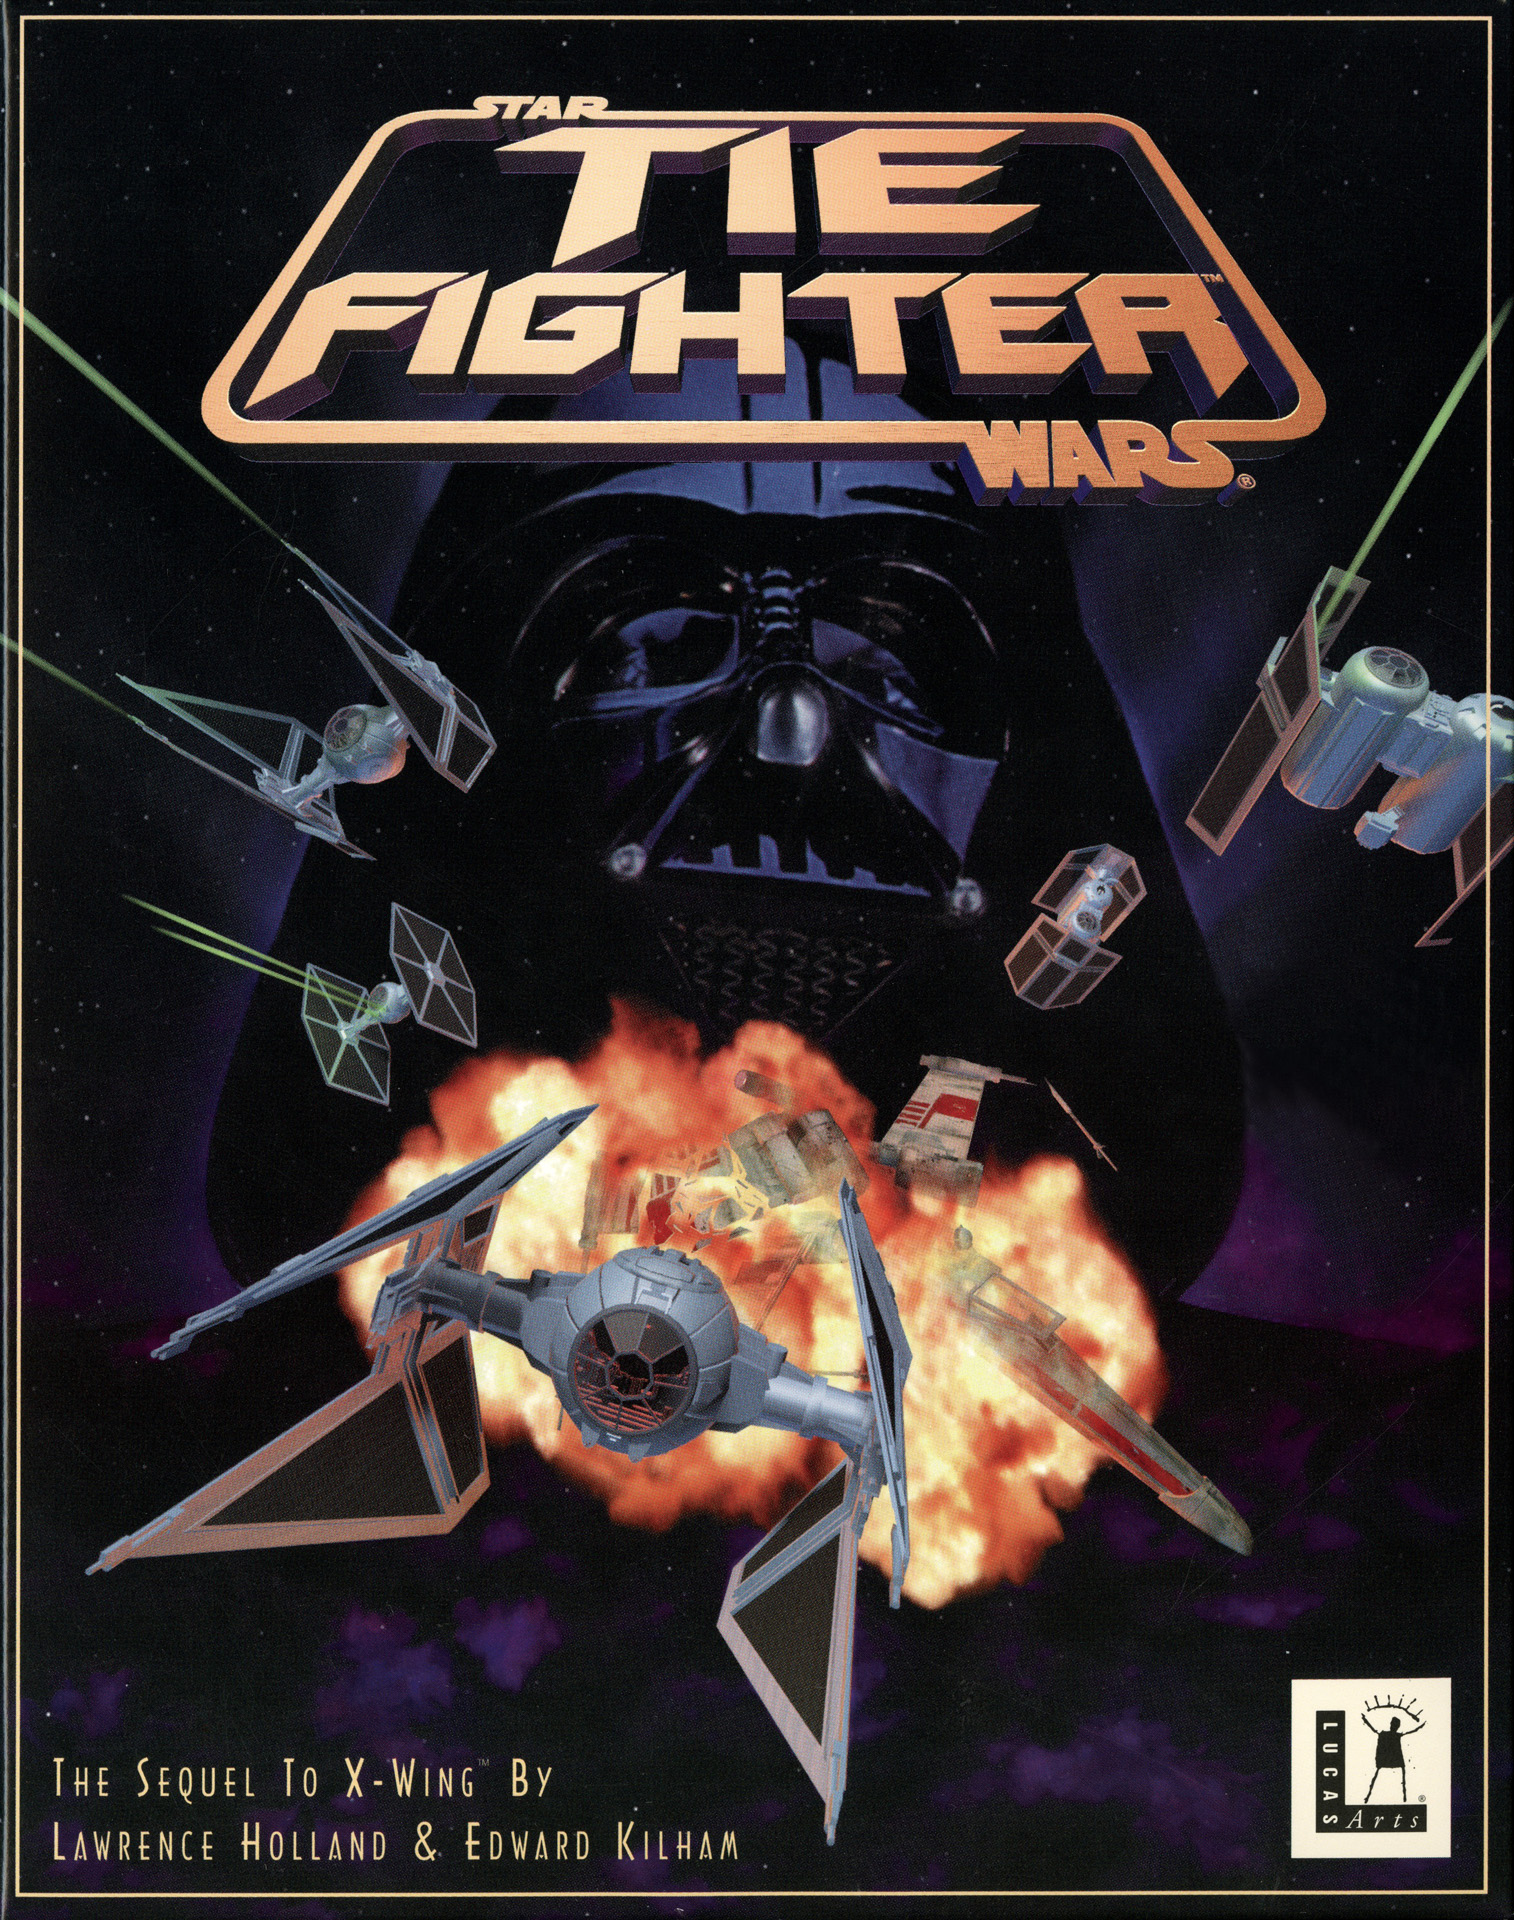 The cover of TIE Fighter